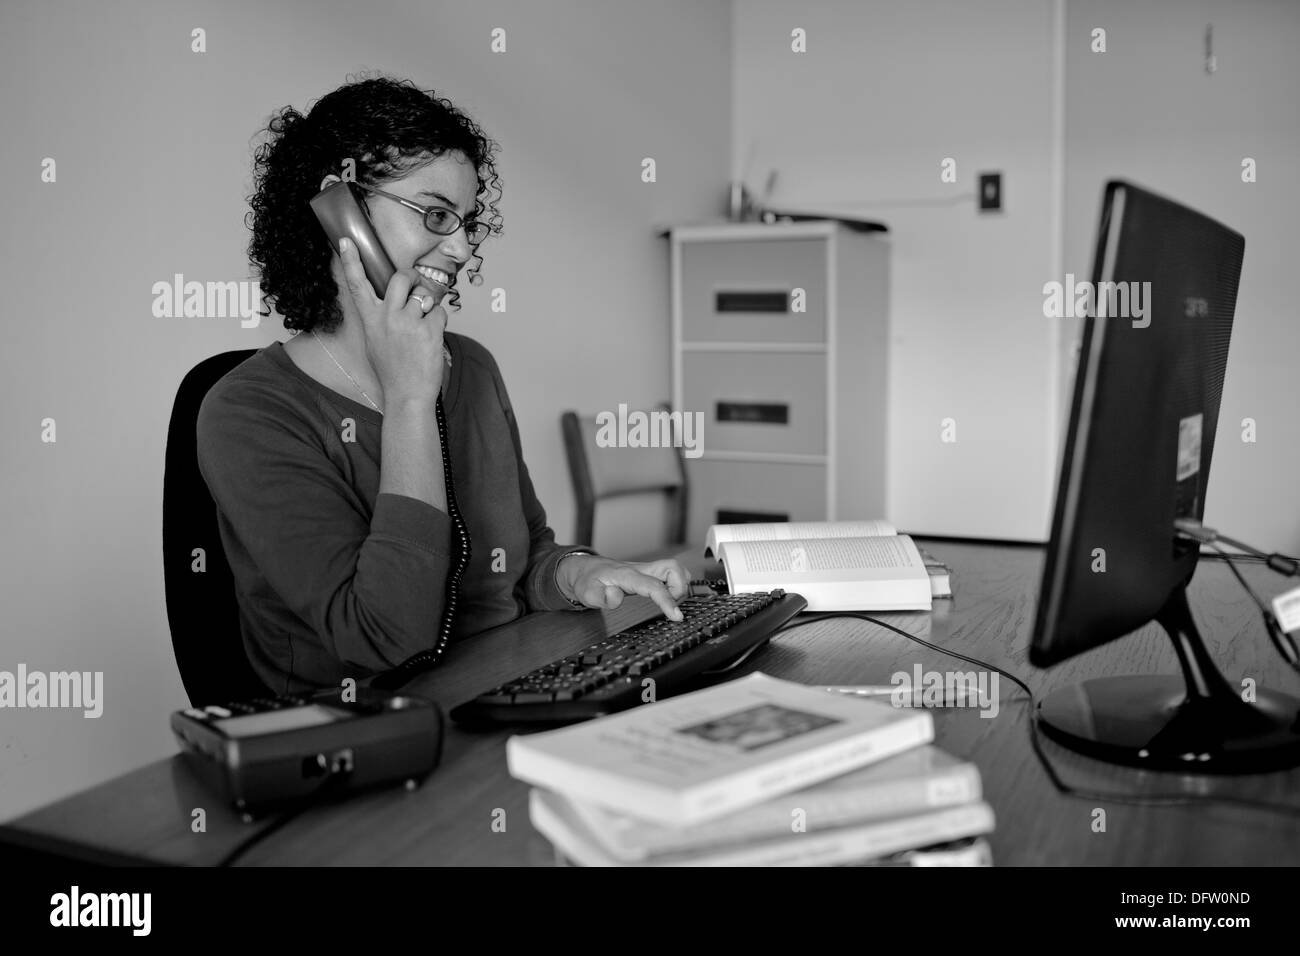 Nicole, postgraduate student talks on the phone and smiles whilst she works on an assignment in her office. - Stock Image